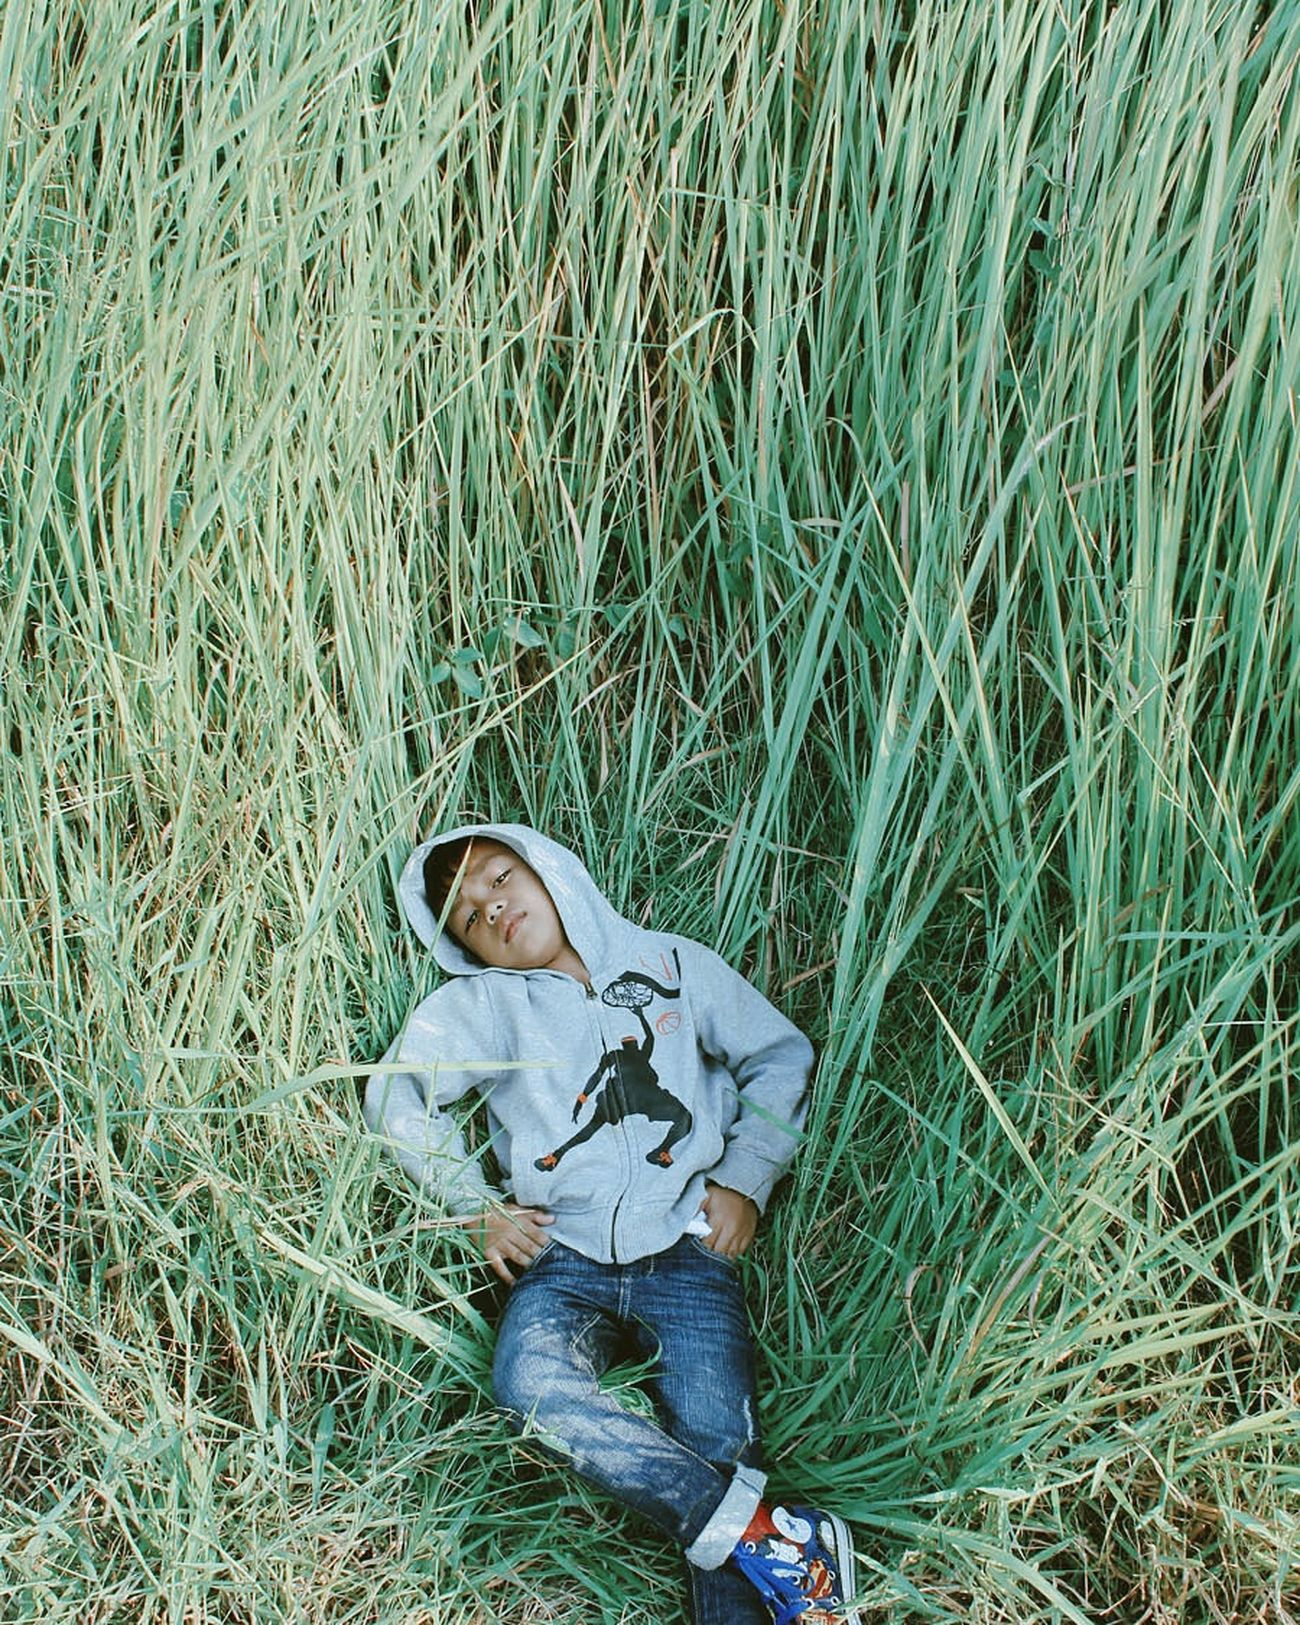 grass, high angle view, one person, field, day